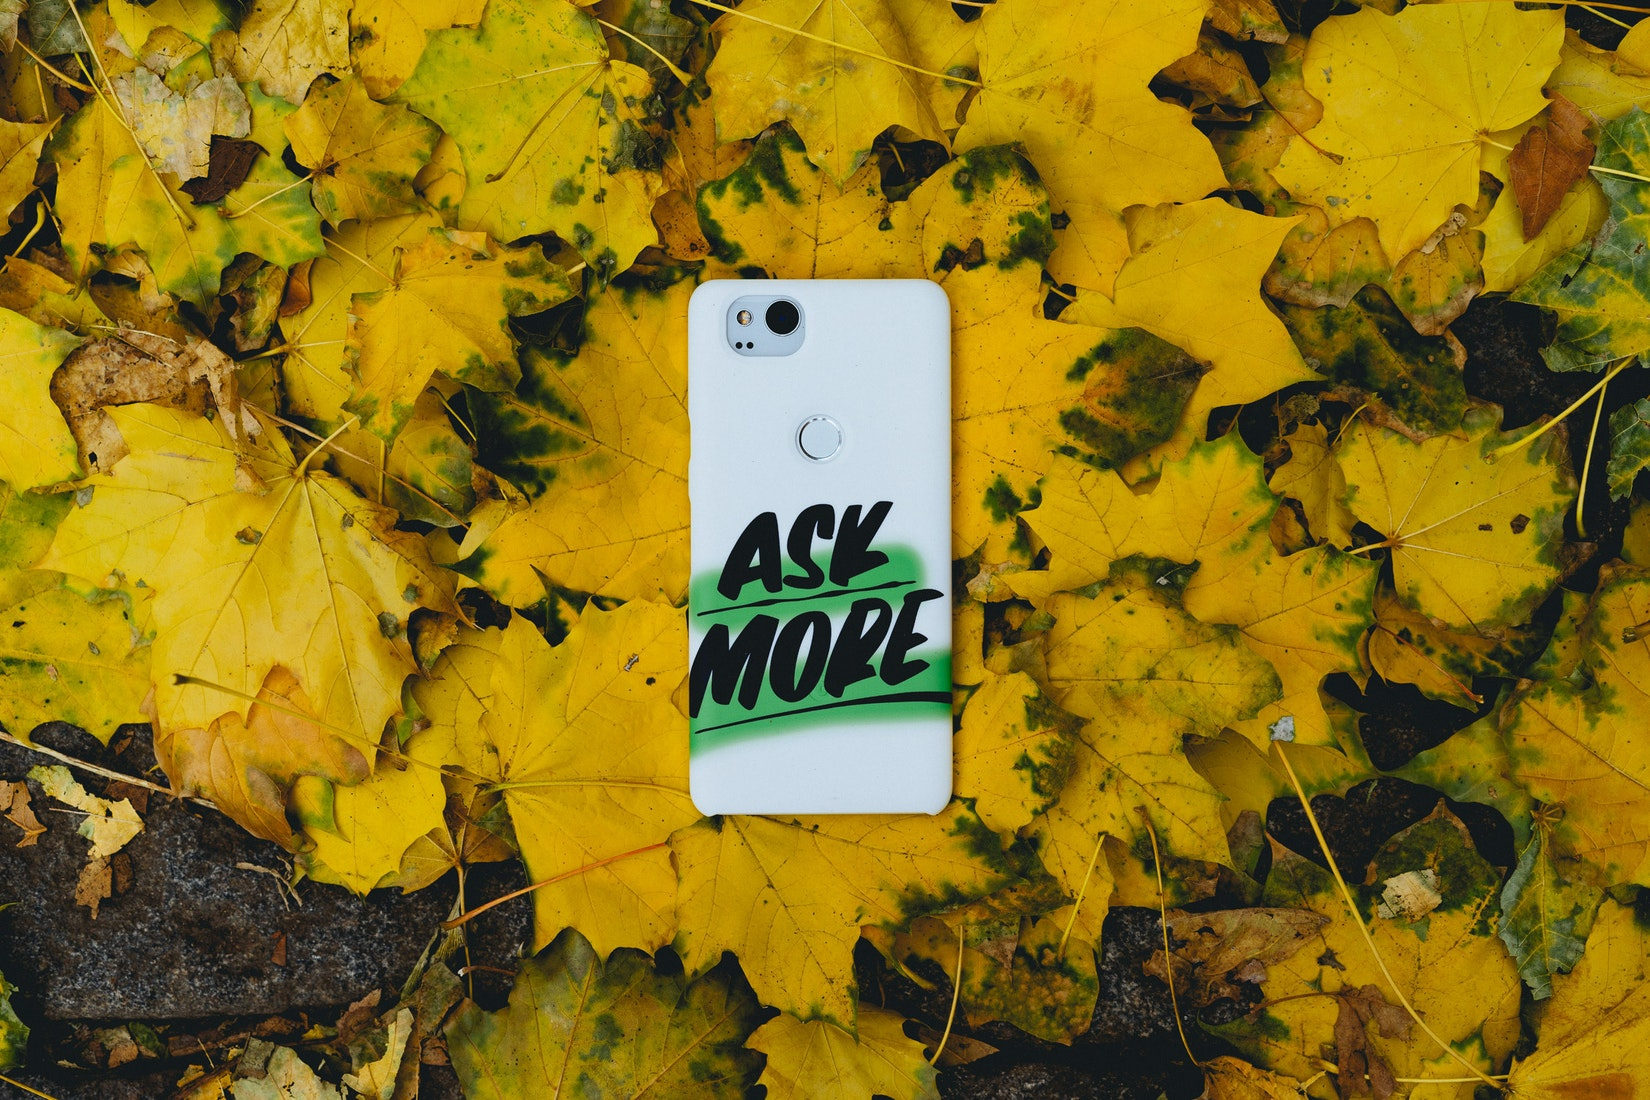 A Google Live Case on yellow leaves